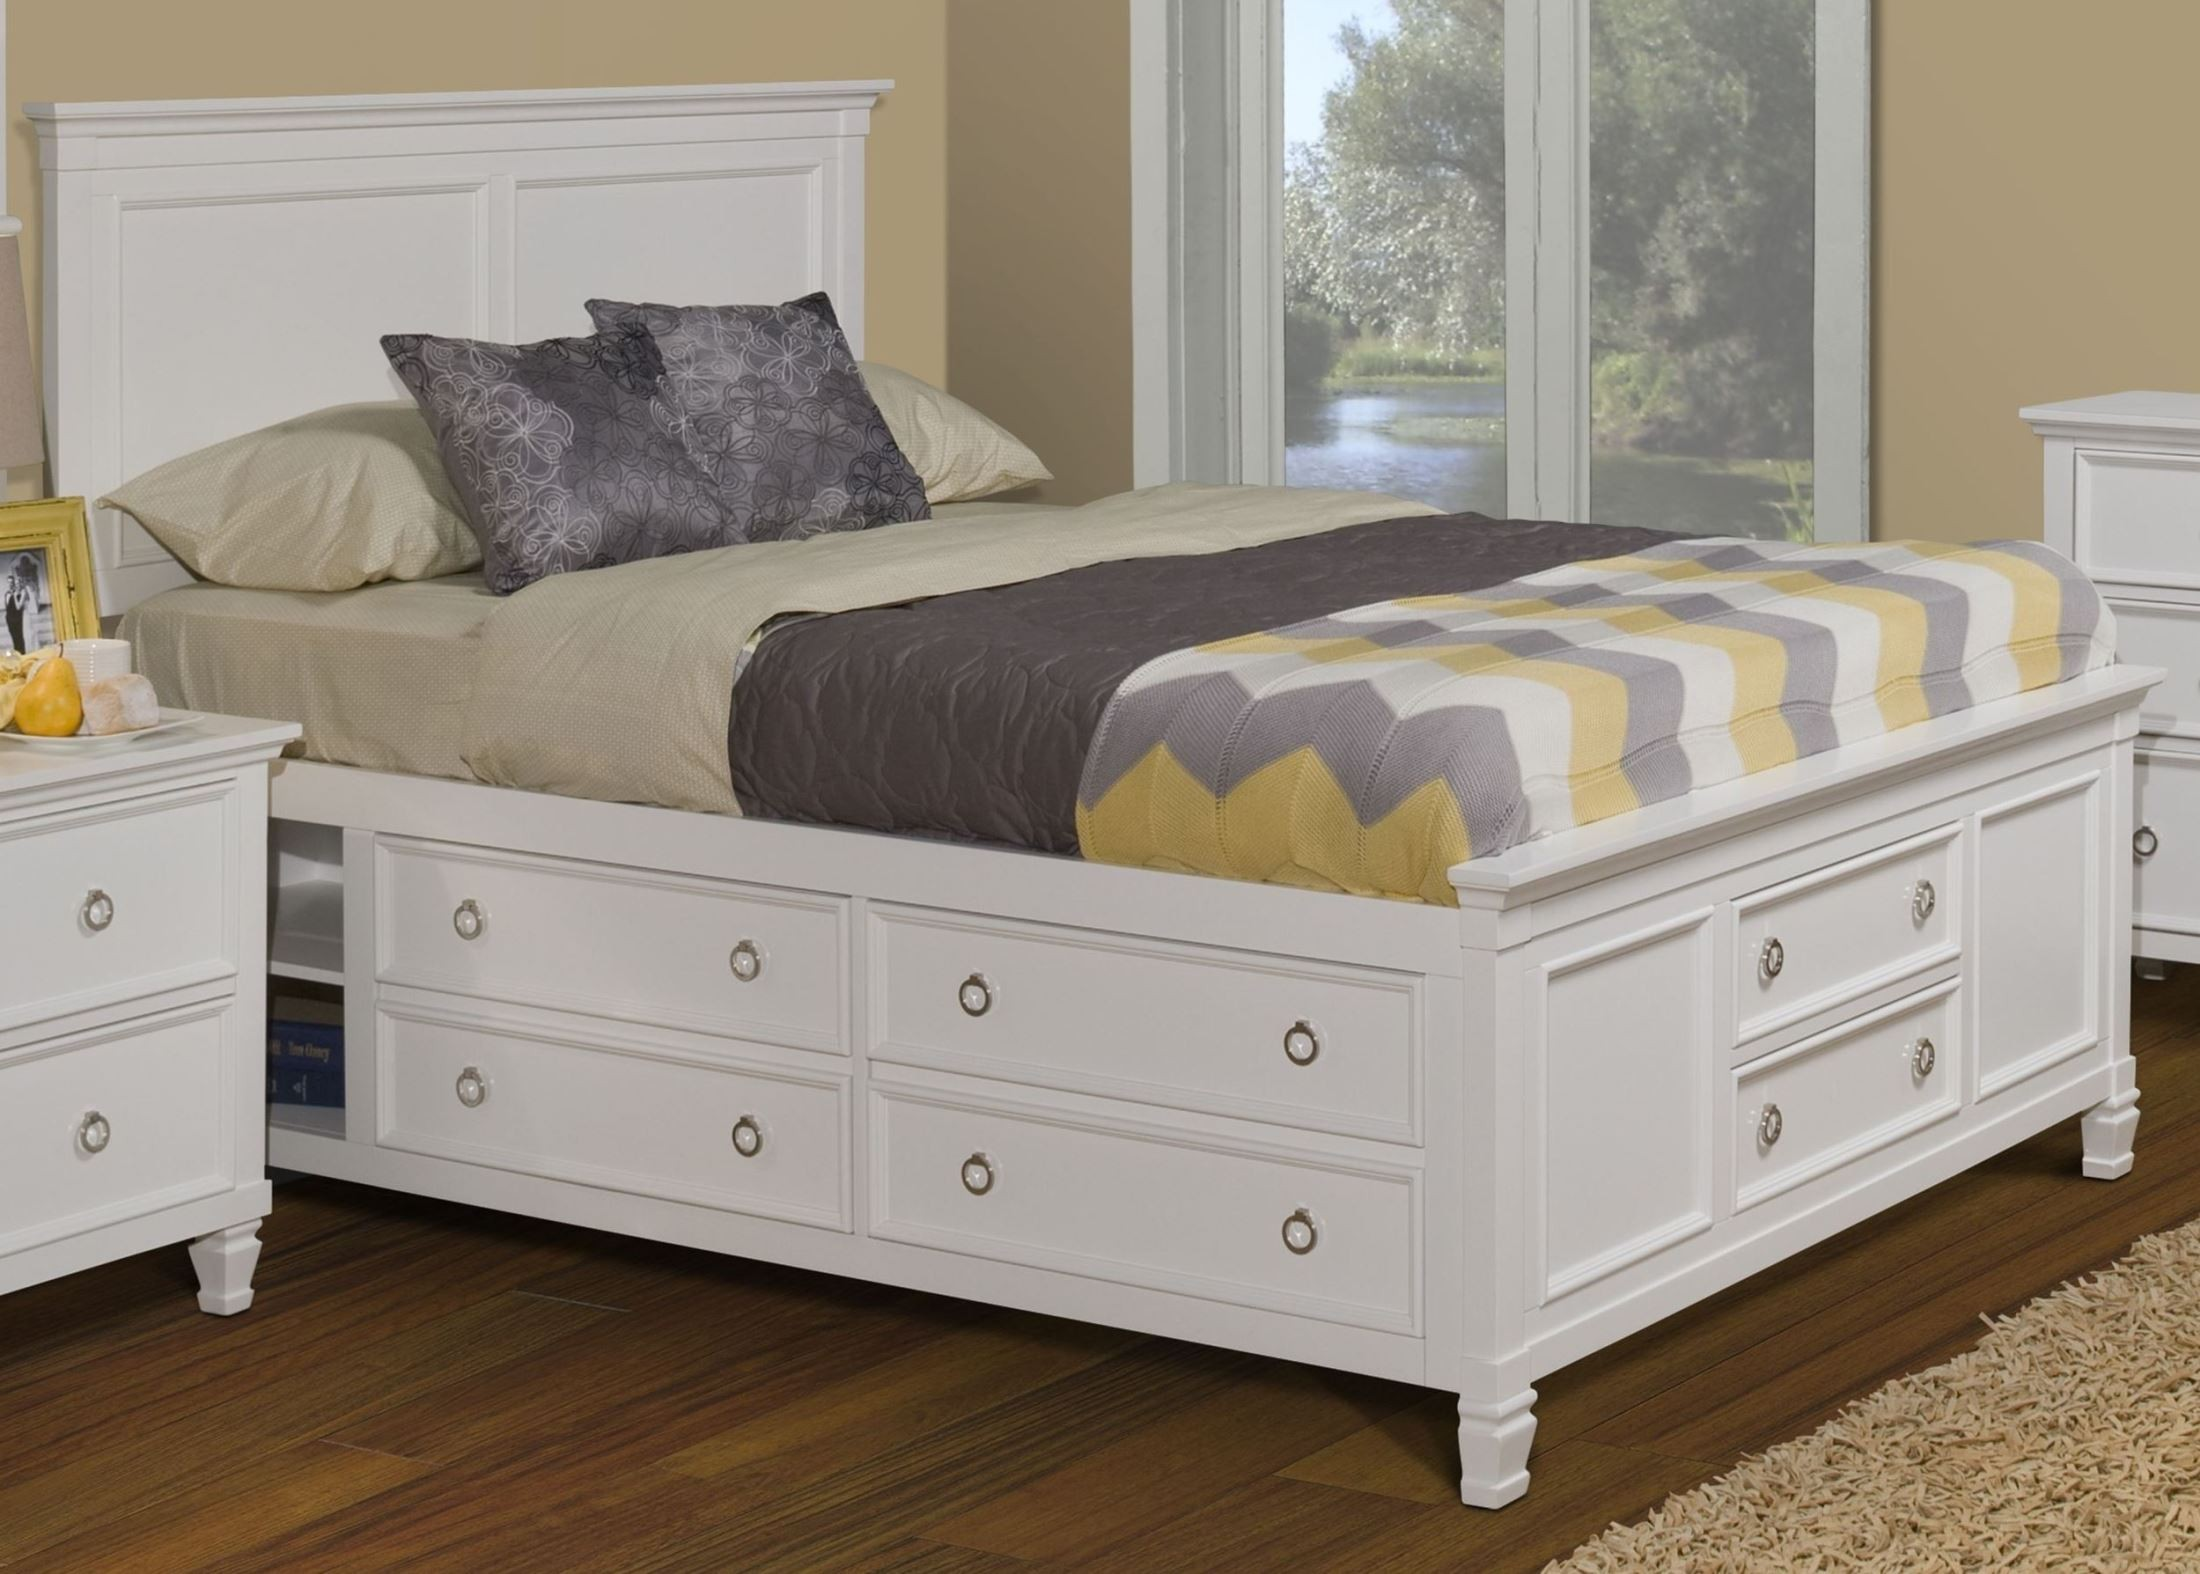 Tamarack White Queen Platform Storage Bed from New Classics | Coleman ...